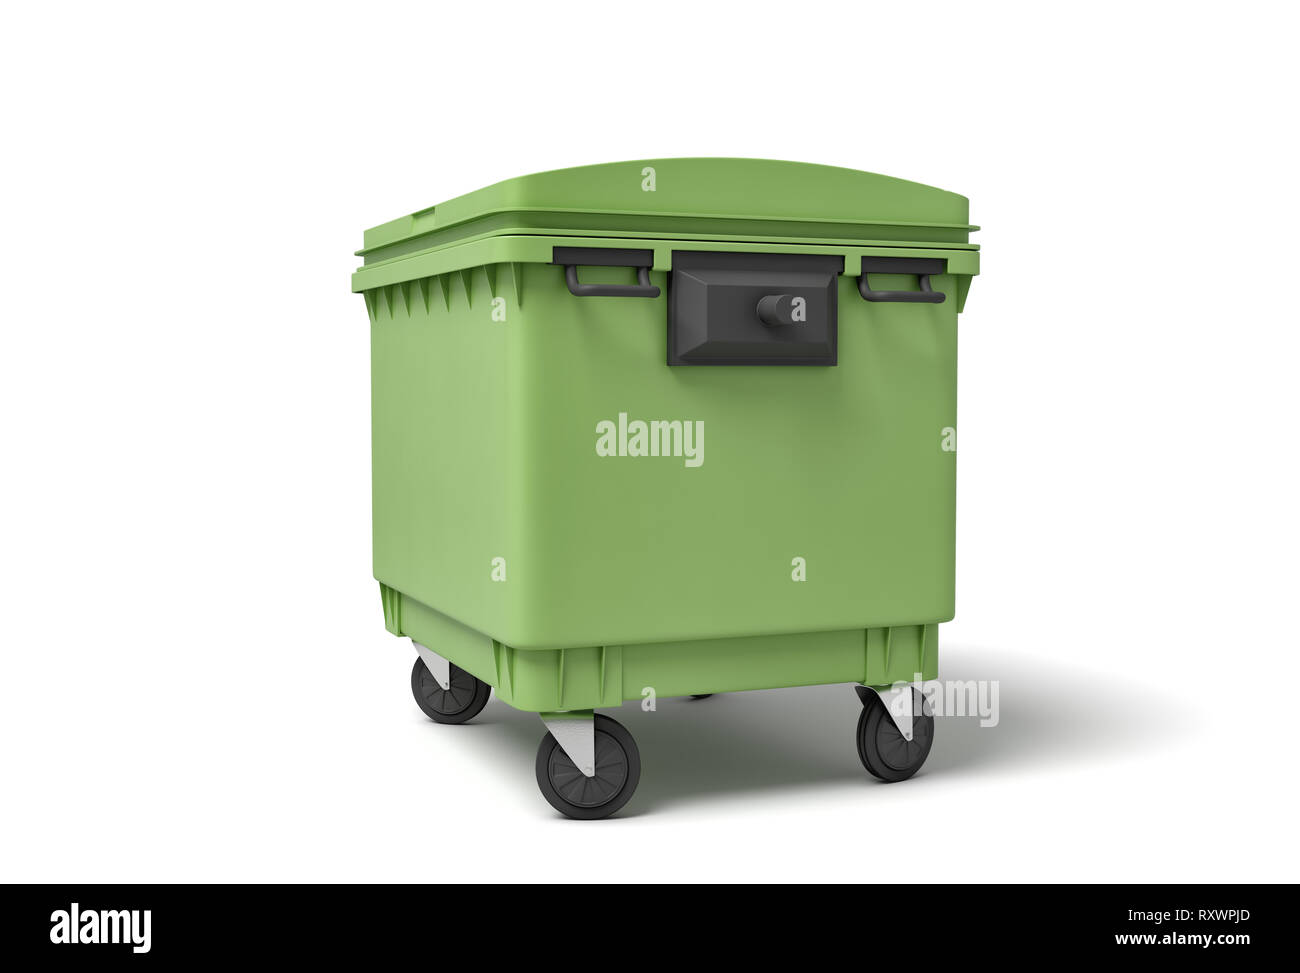 3d rendering of green trash bin isolated on white background - Stock Image